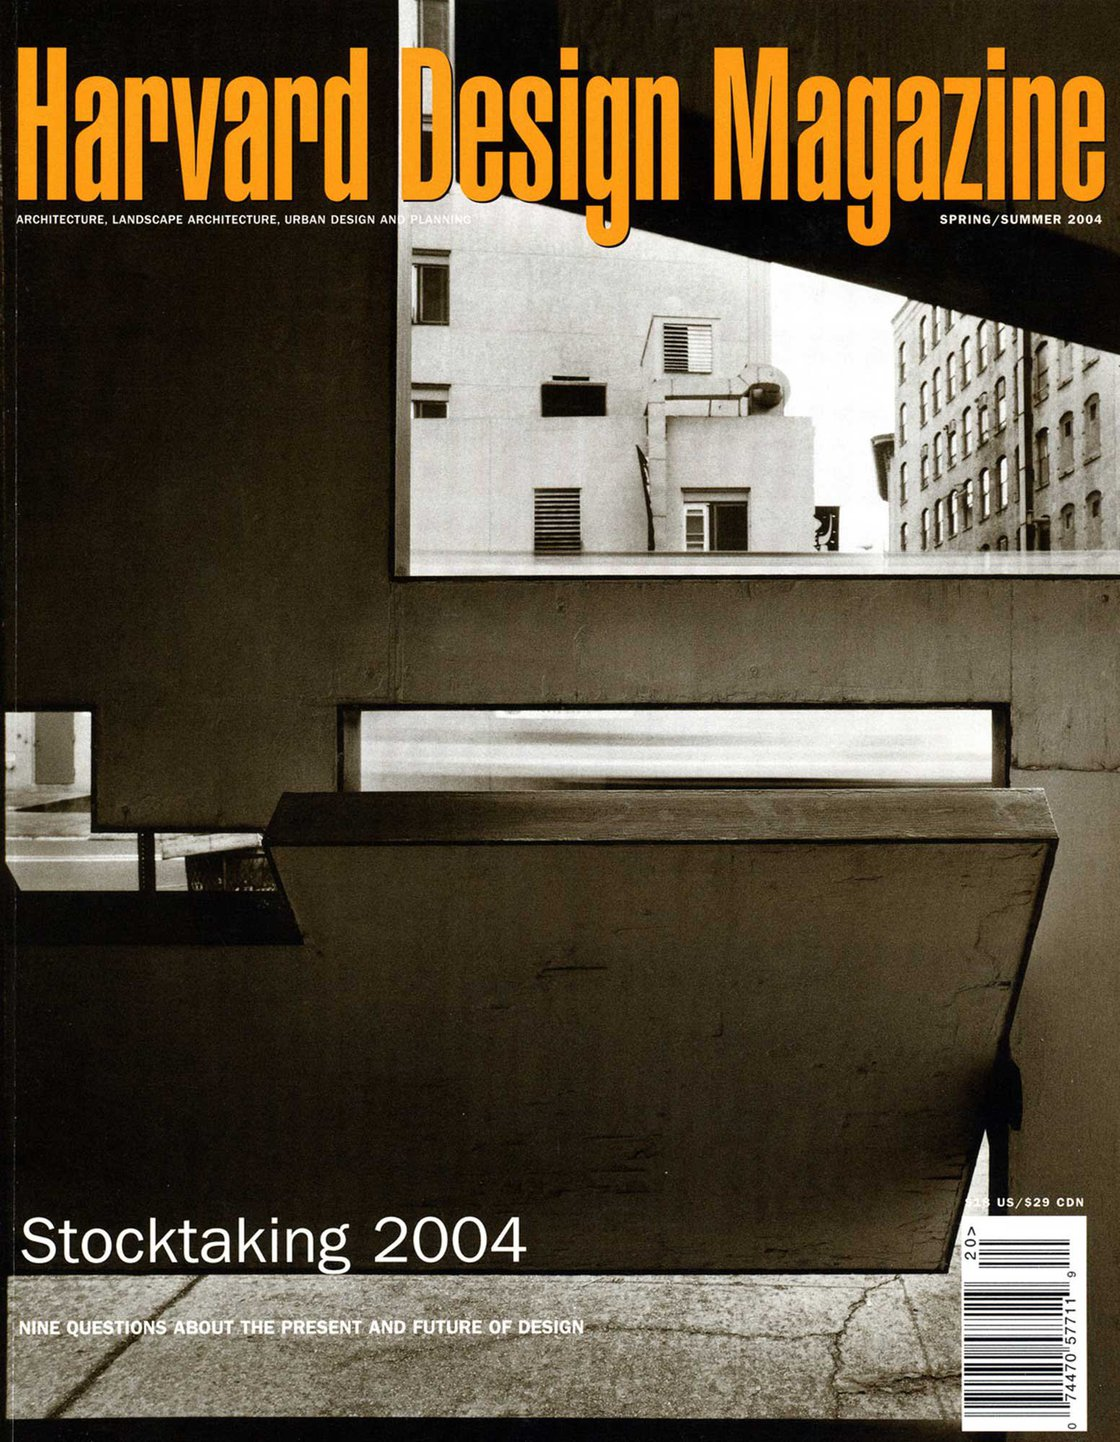 No. 20, S/S 2004 Stocktaking 2004: Nine Questions about the Present and Future of Design